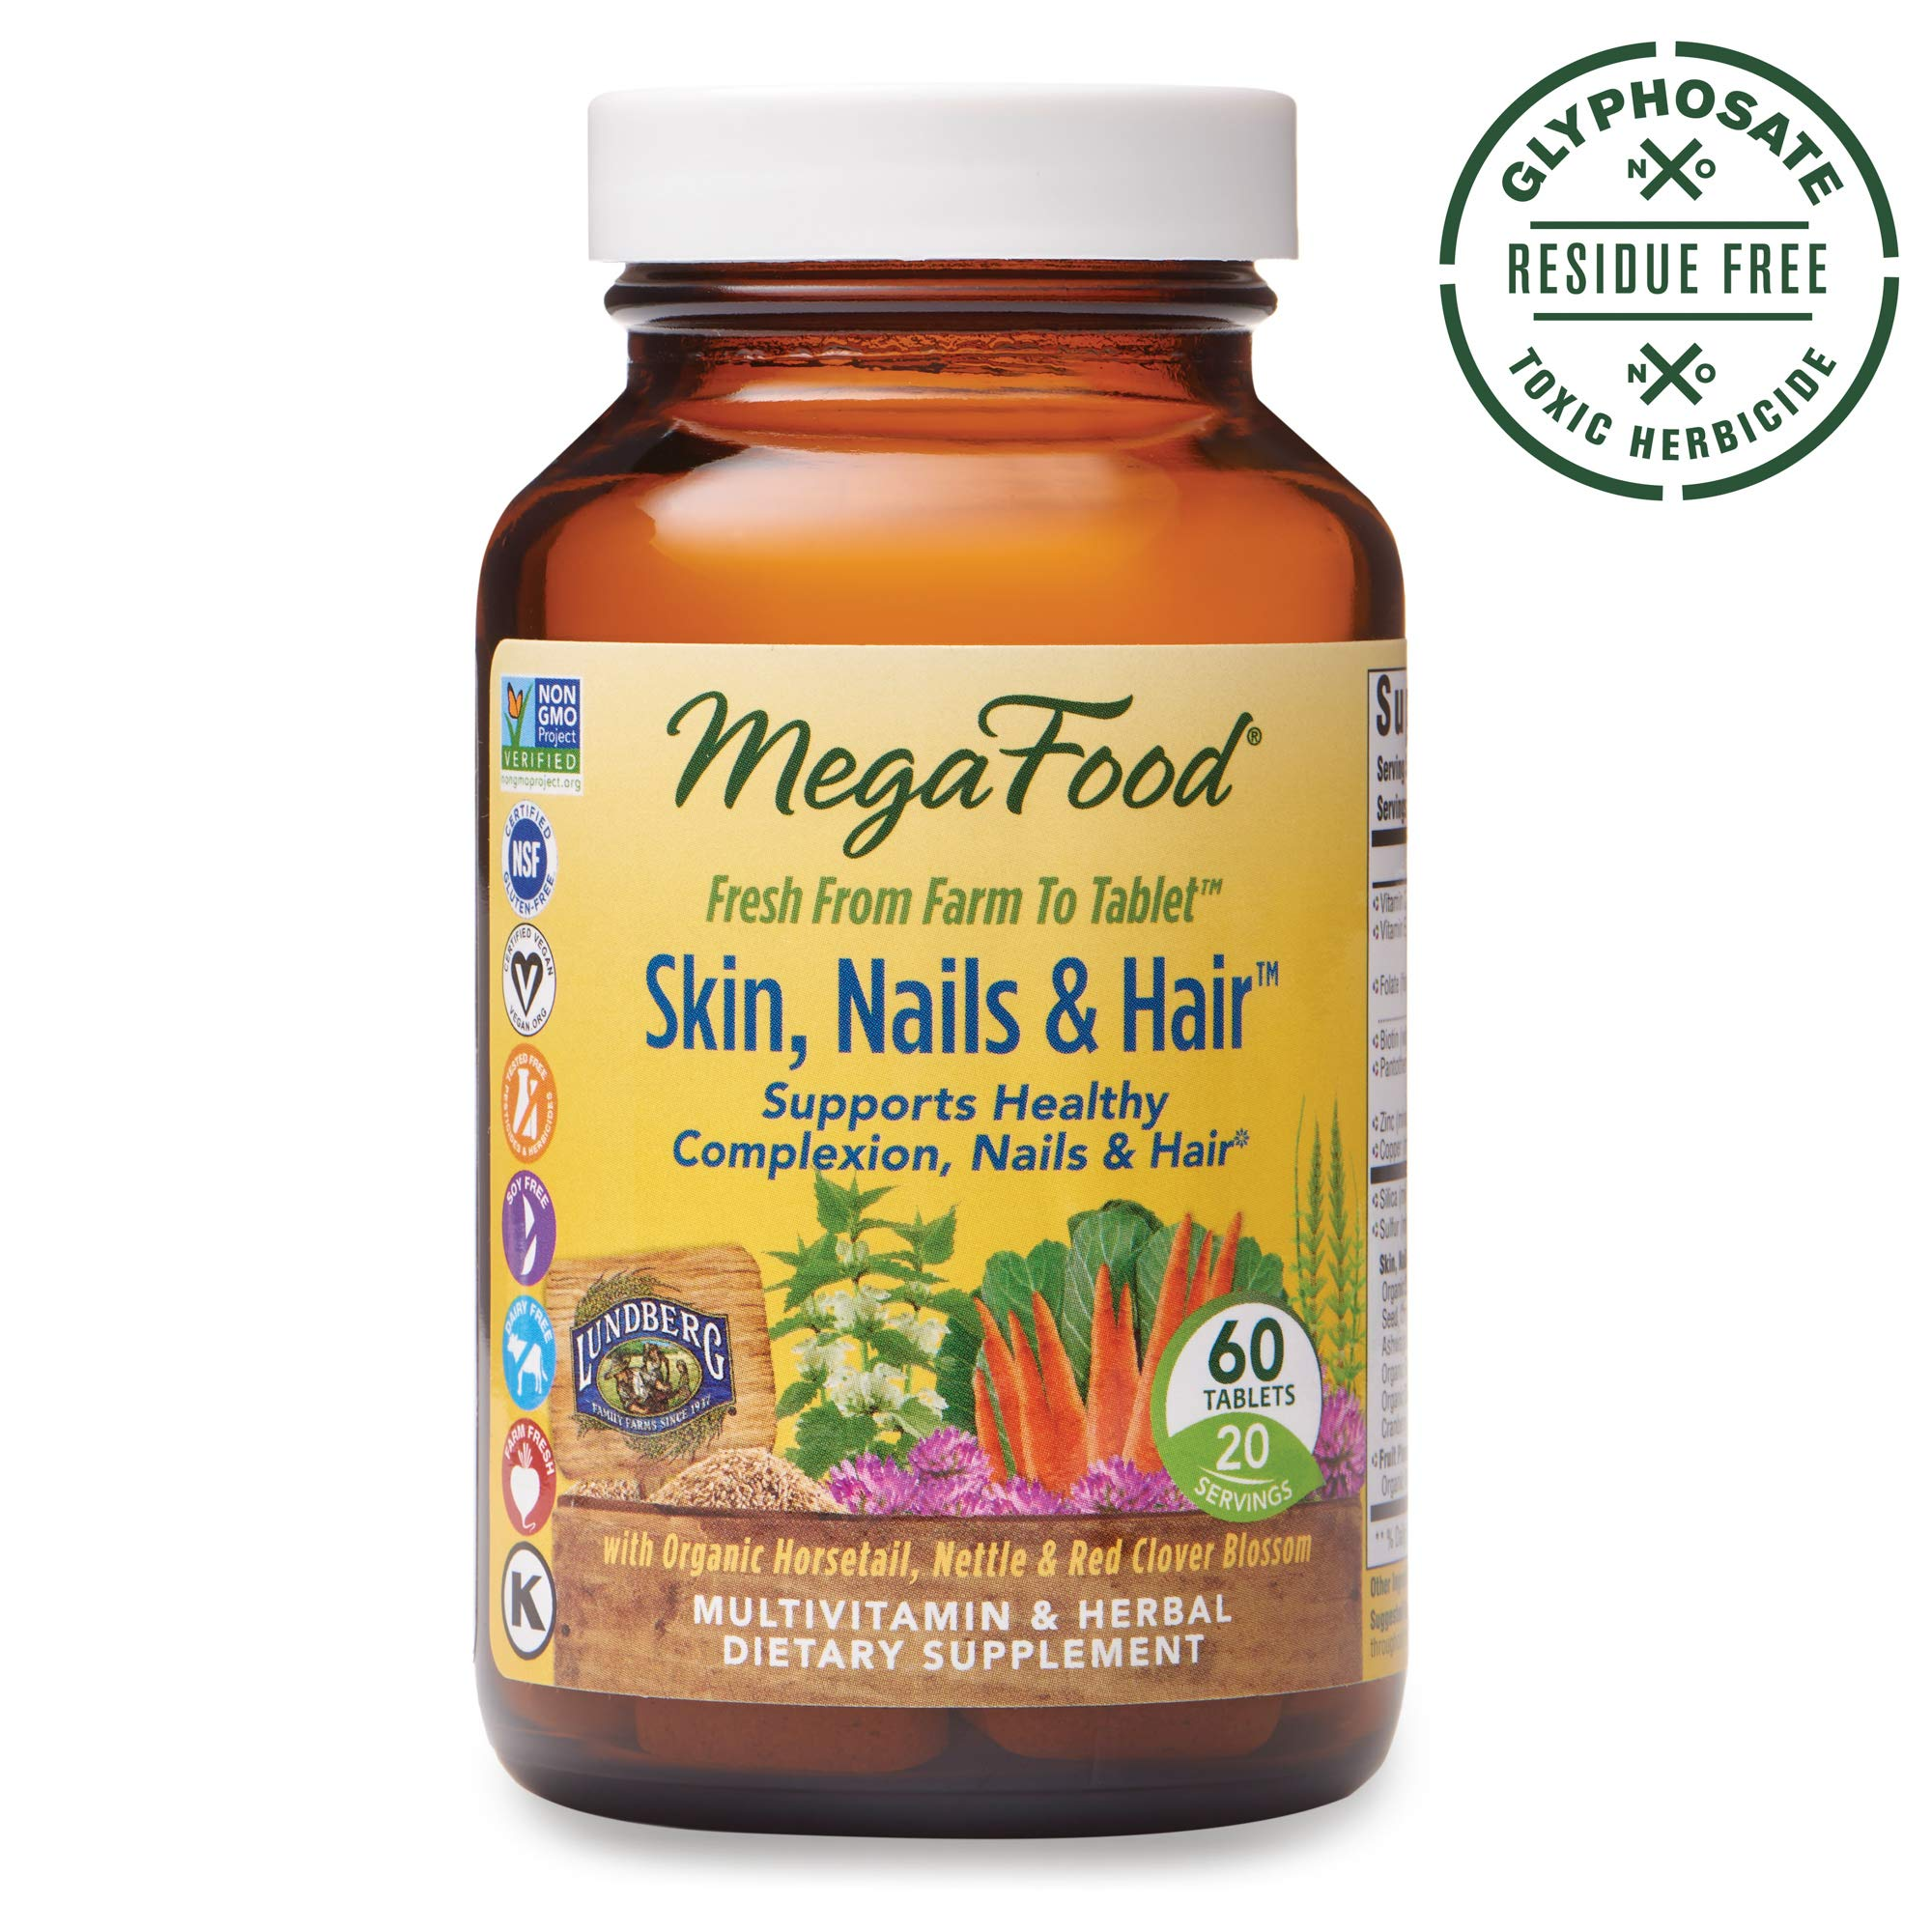 MegaFood, Skin, Nails & Hair, Supports Healthy Complexion, Nails & Hair, Multivitamin & Herbal Dietary Supplement, Gluten Free, Vegan, 60 Tablets (20 Servings) (FFP) by MegaFood